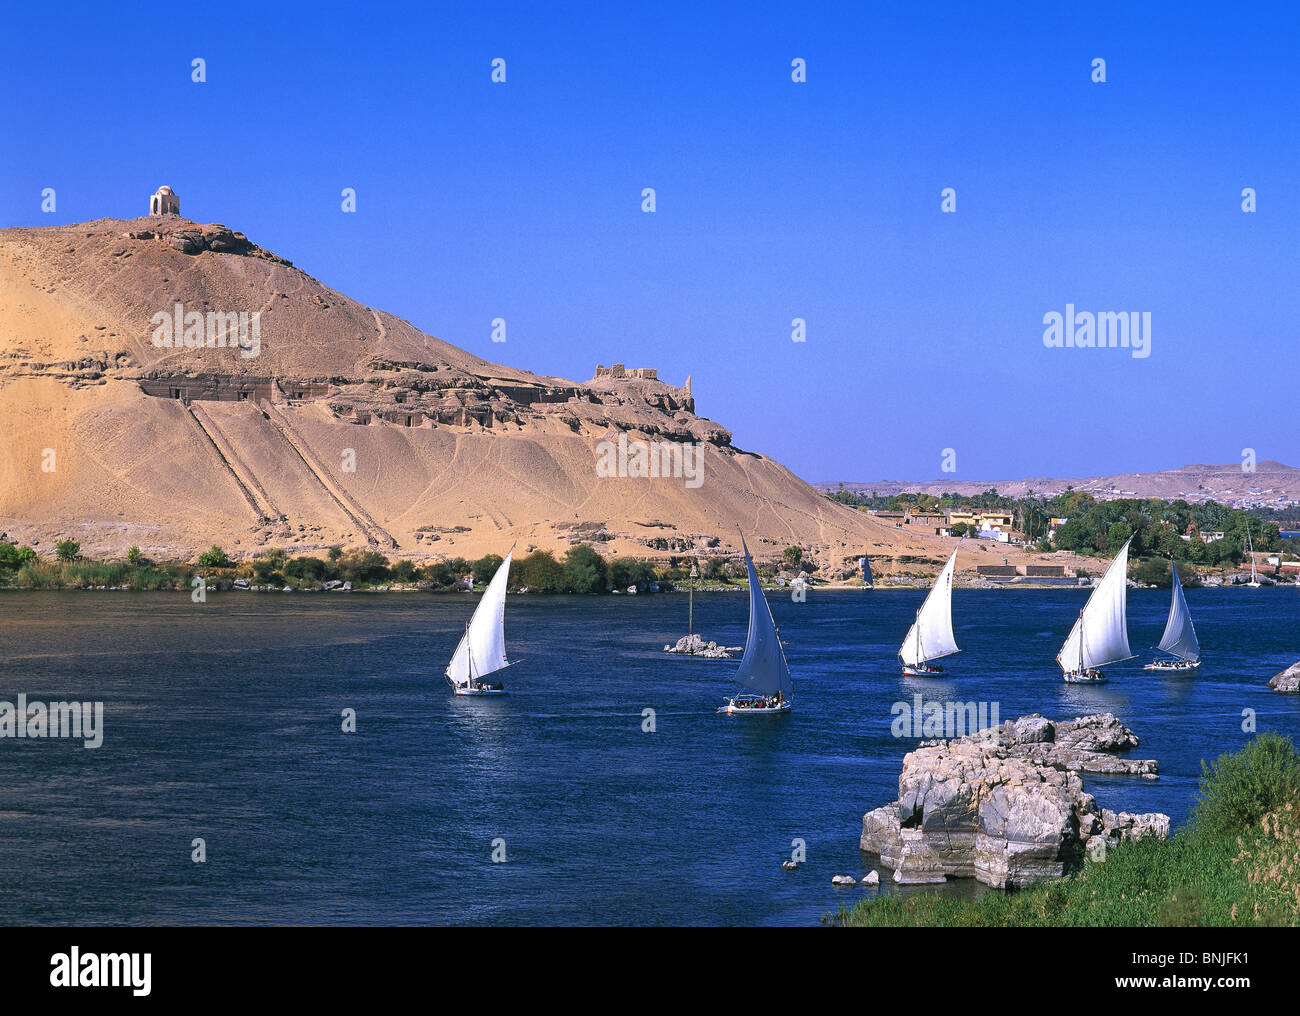 Egypt March 2007 Nile River at Aswan city Feluca boats landscape - Stock Image